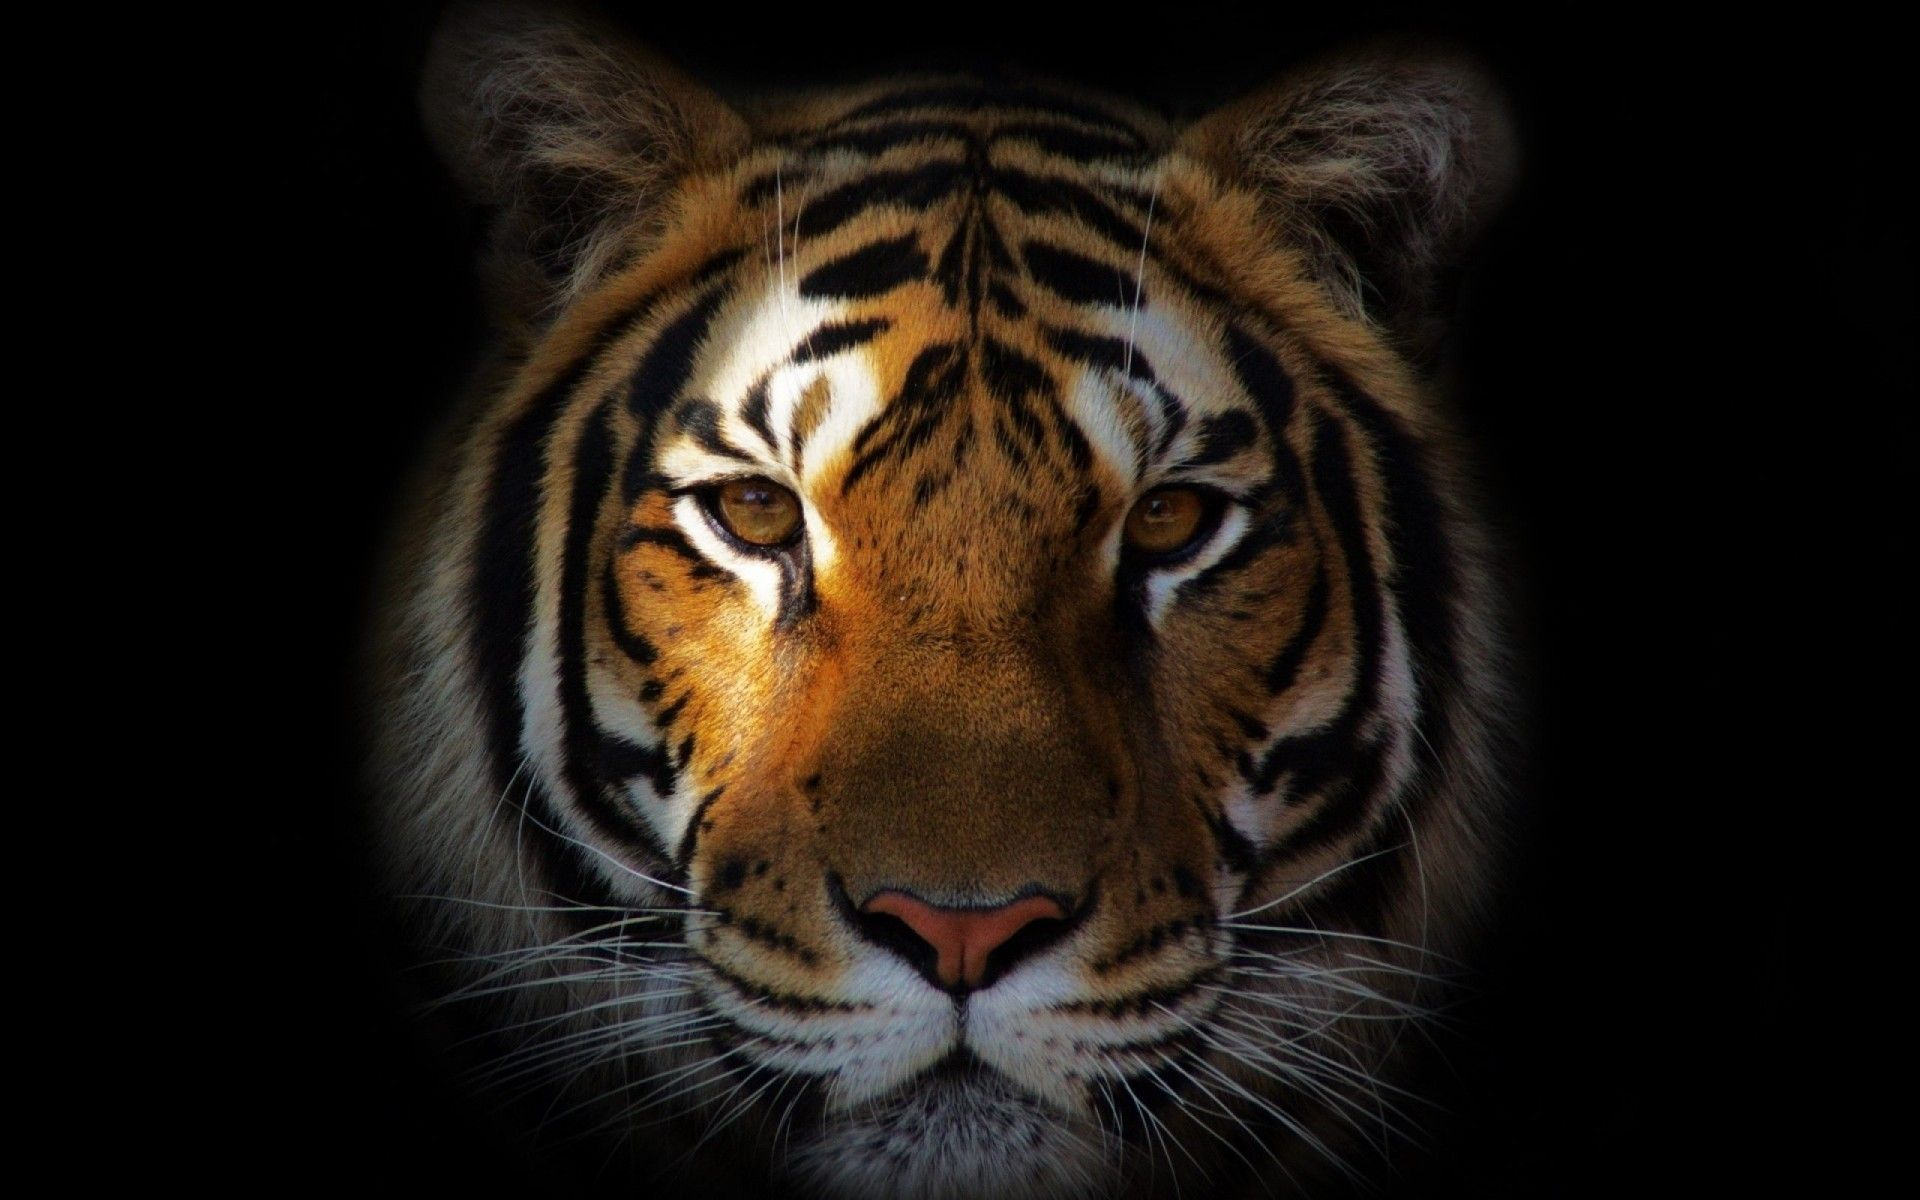 30 Nice Tiger Face Wallpapers in High Quality, Heleen Browning